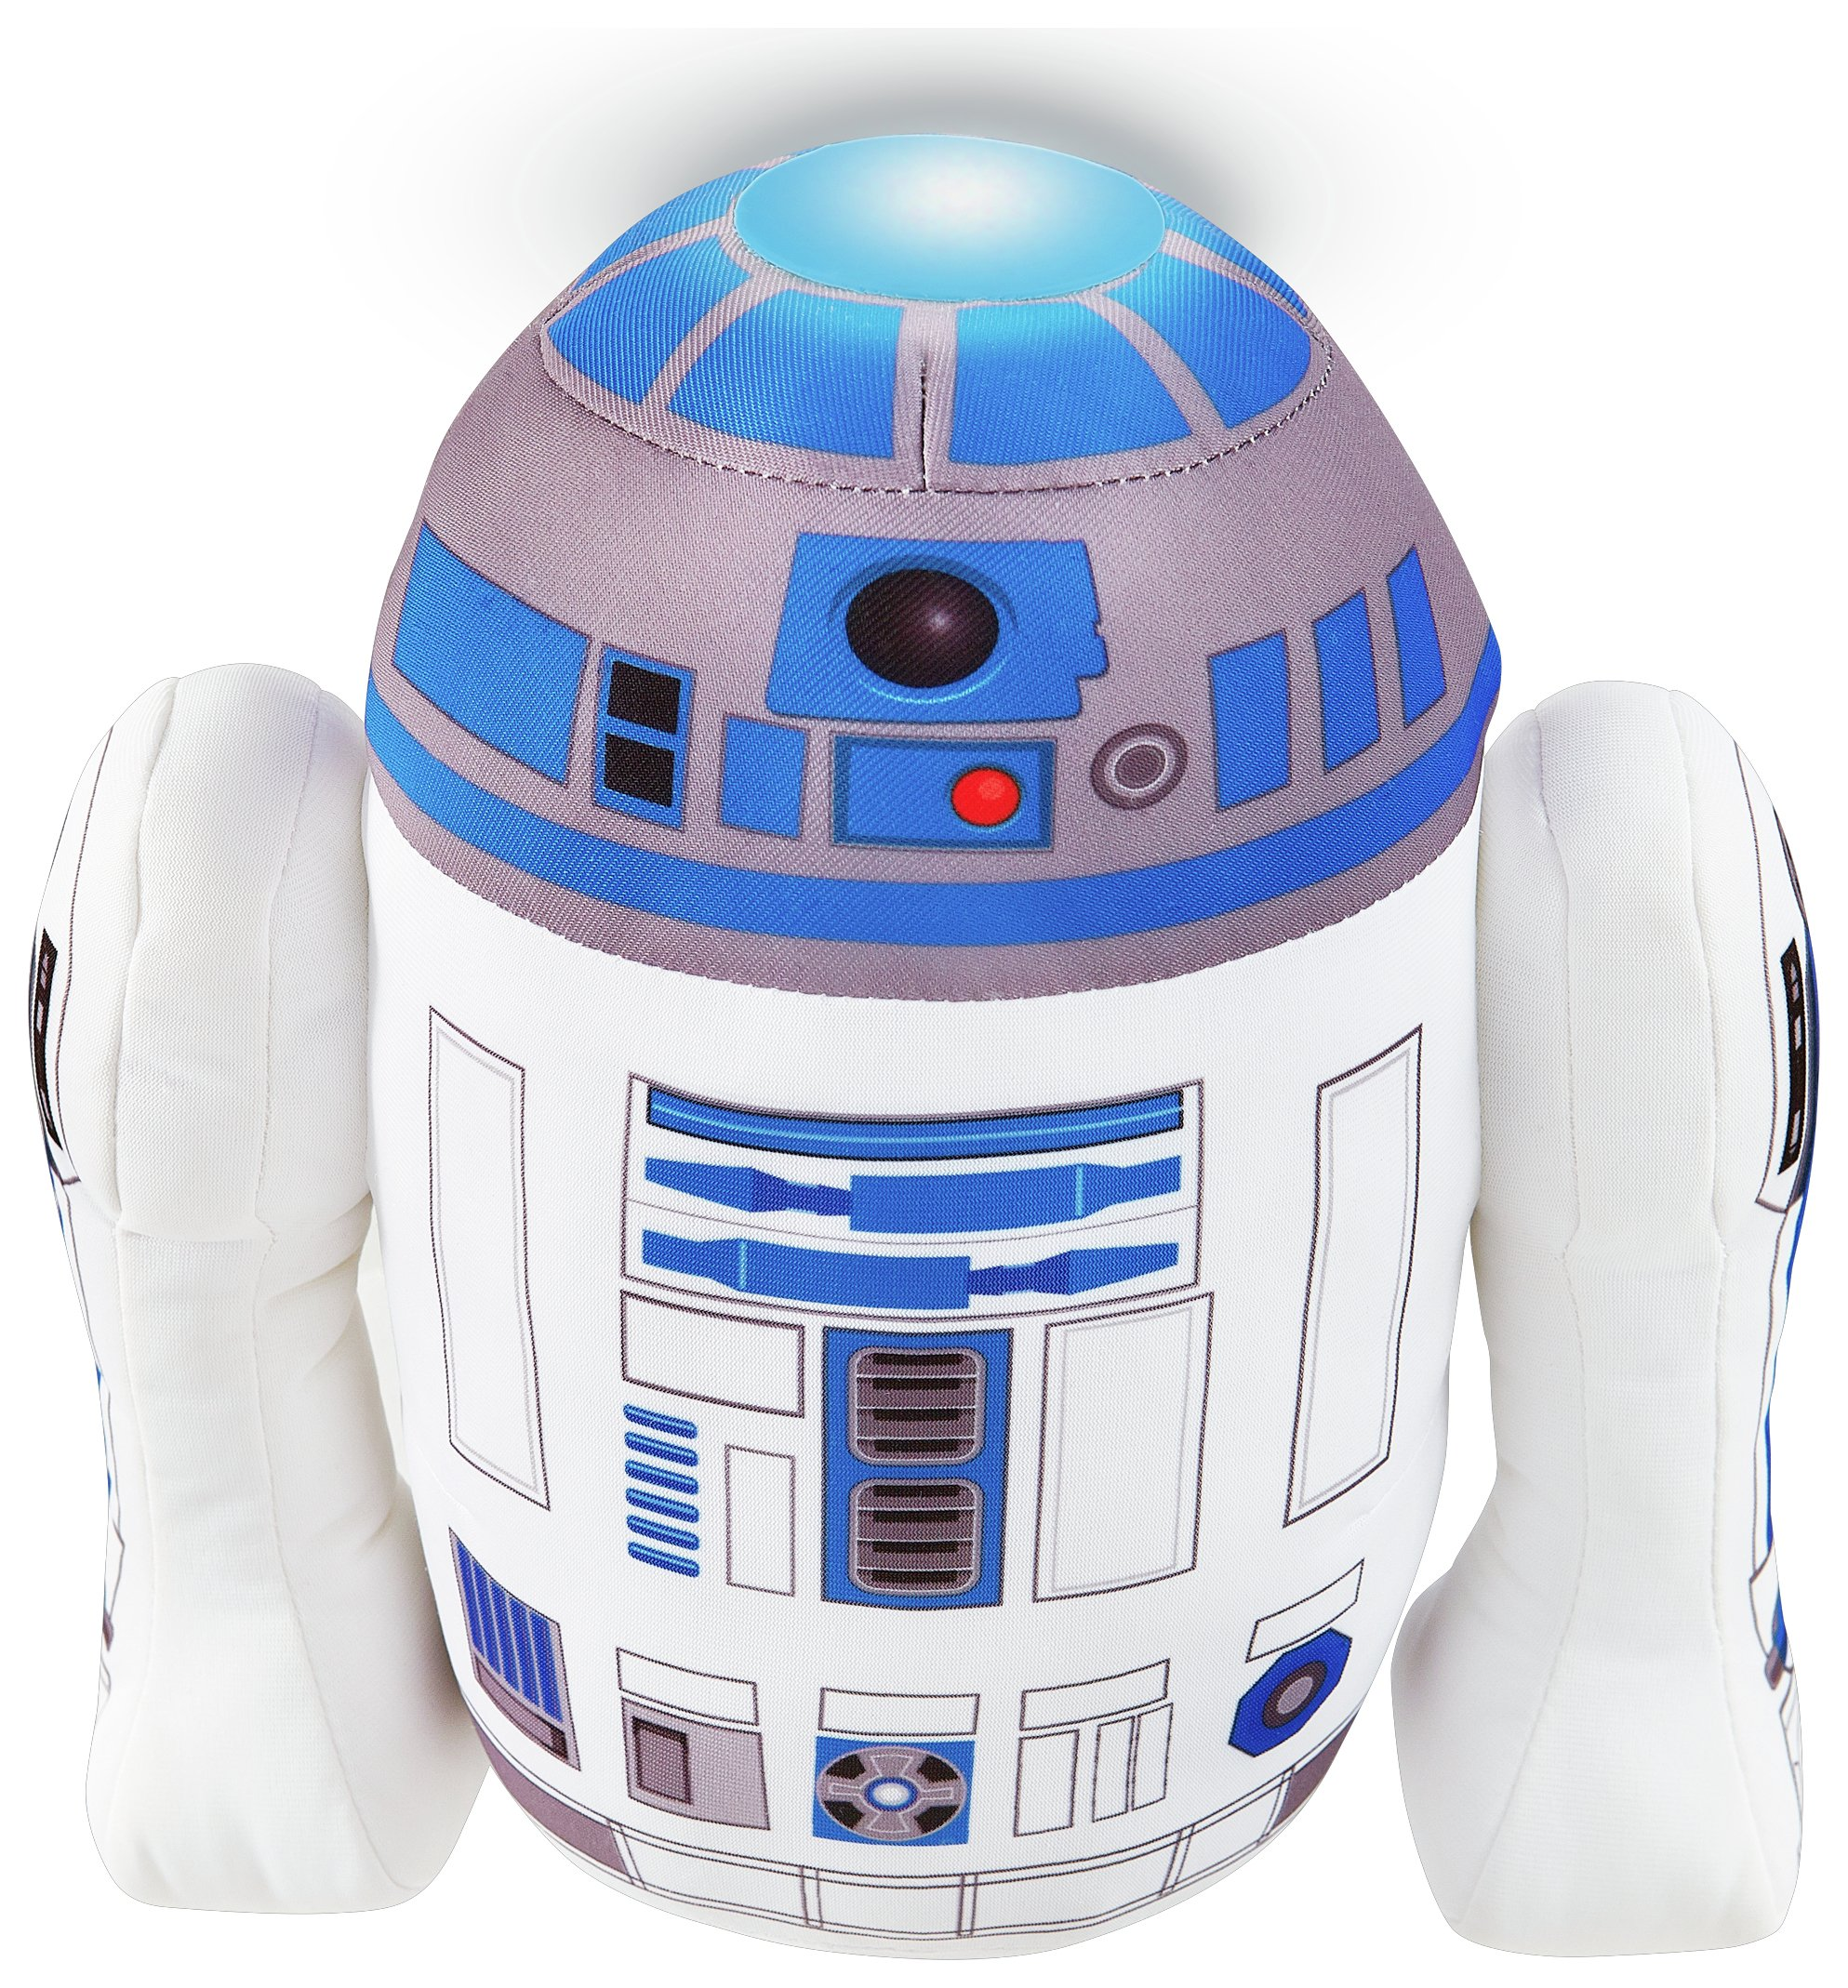 Image of Star Wars - R2-D2 Nightlight and Cuddly Toy